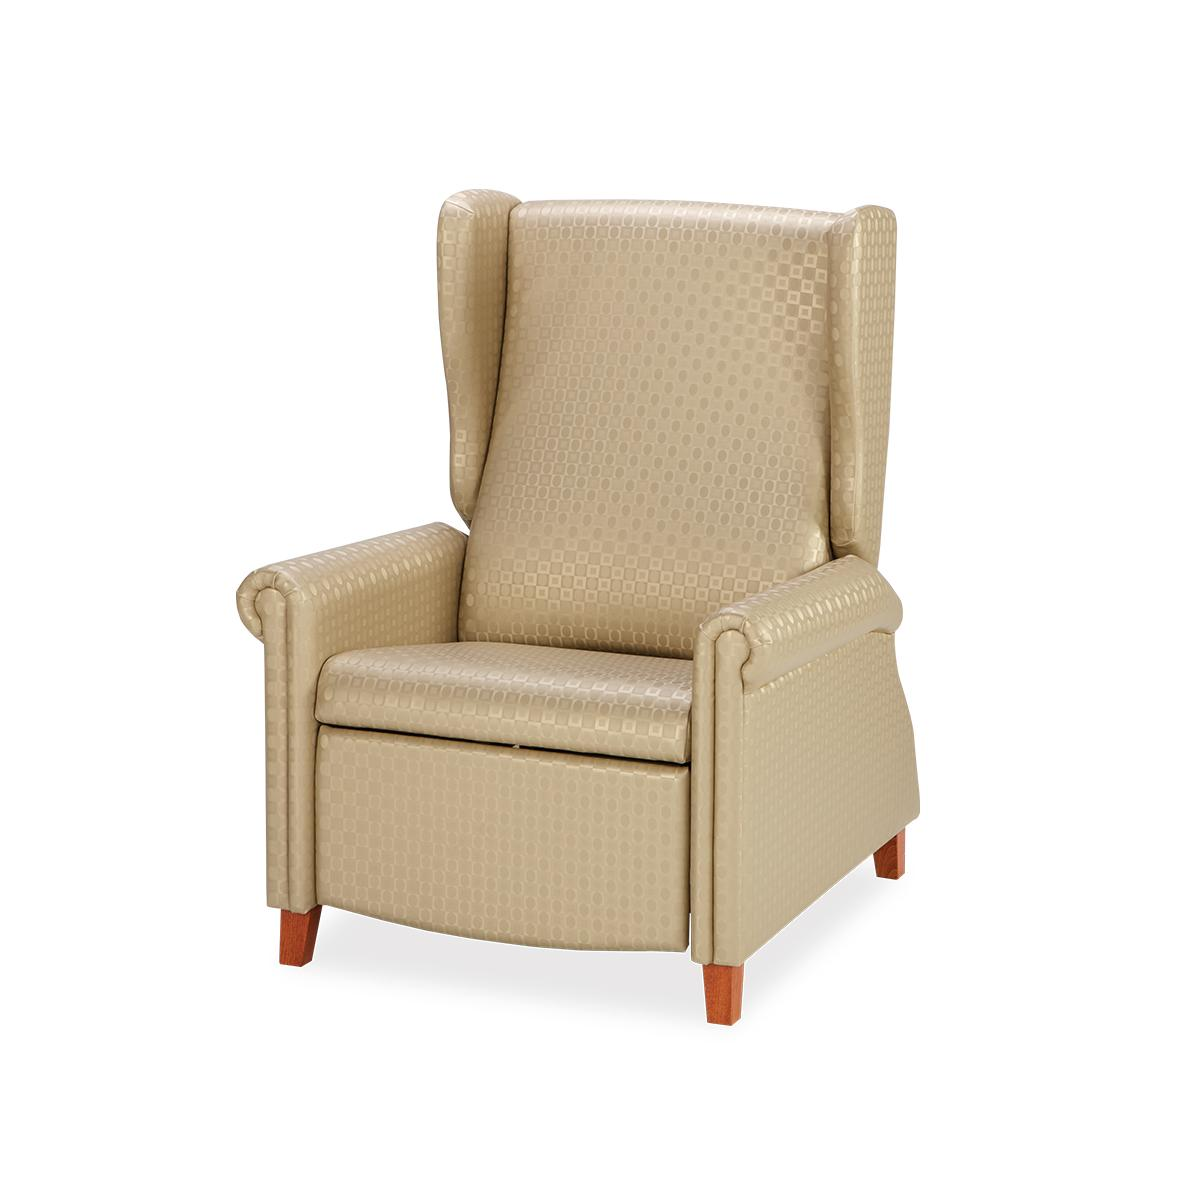 Art of Care Traditional Recliner, tan material, 3/4 view